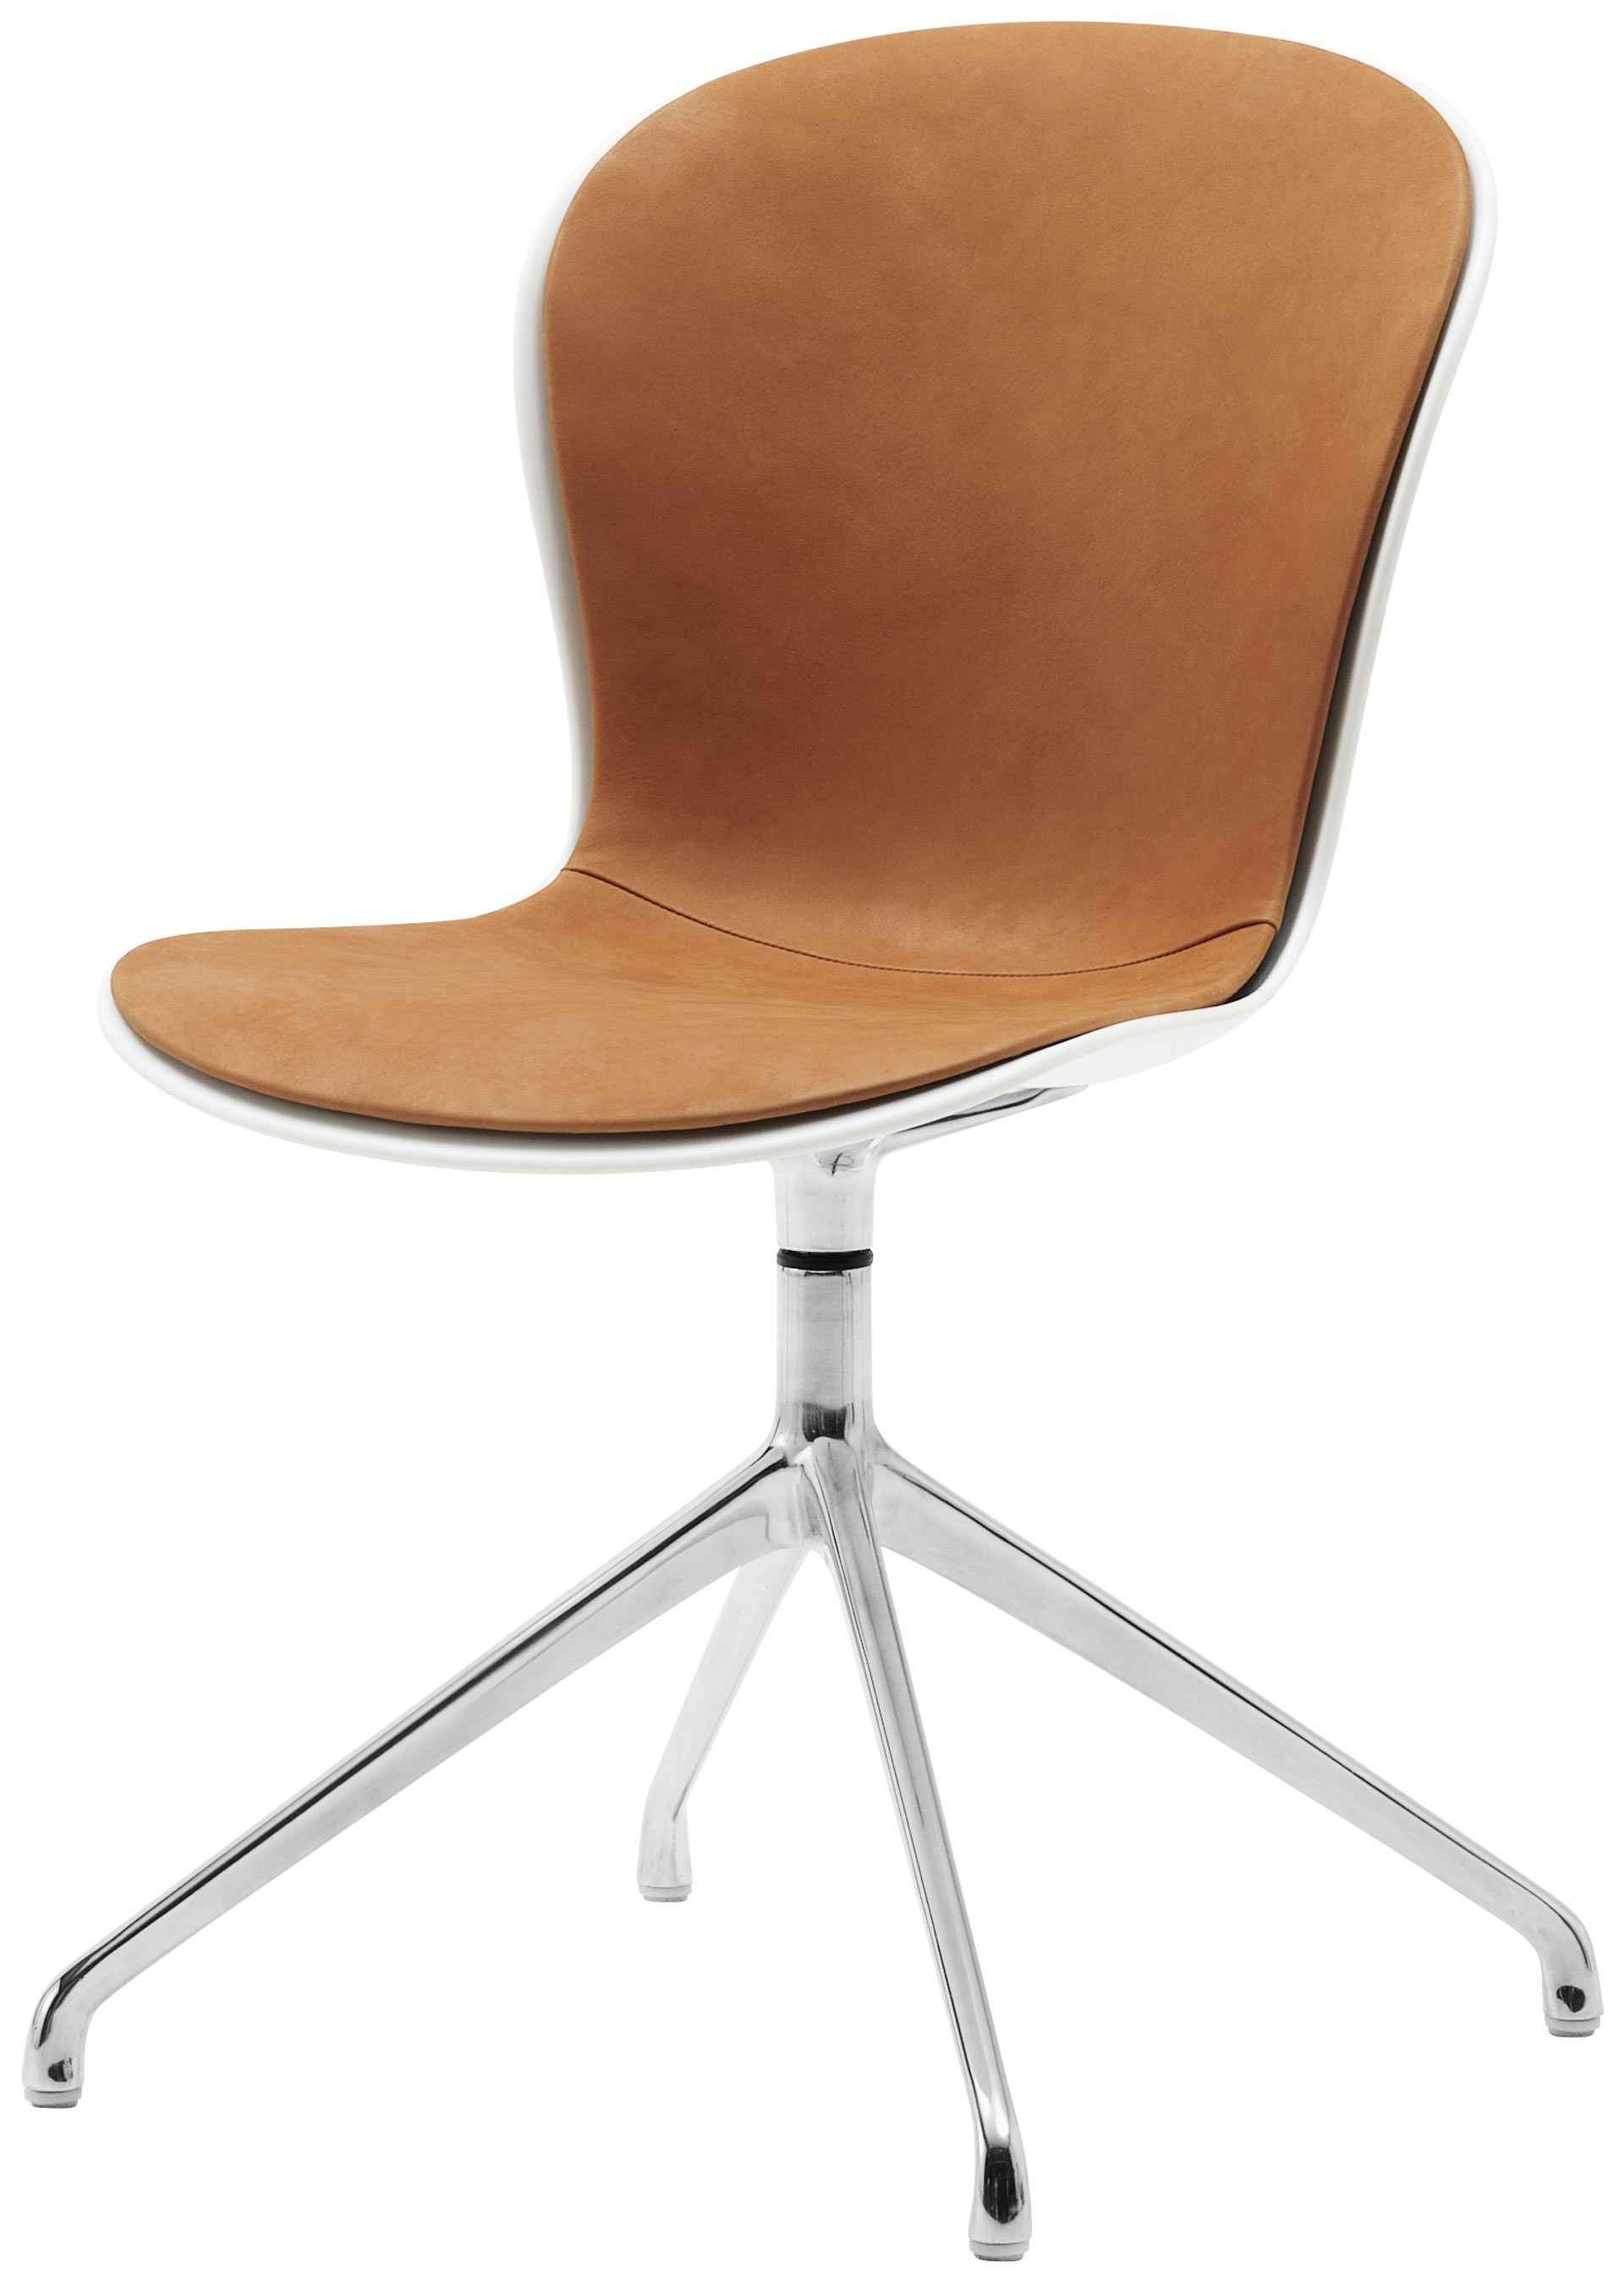 Modern Dining Chairs Contemporary Dining Chairs Boconcept Dining Chairs Dining Chair Design Boconcept